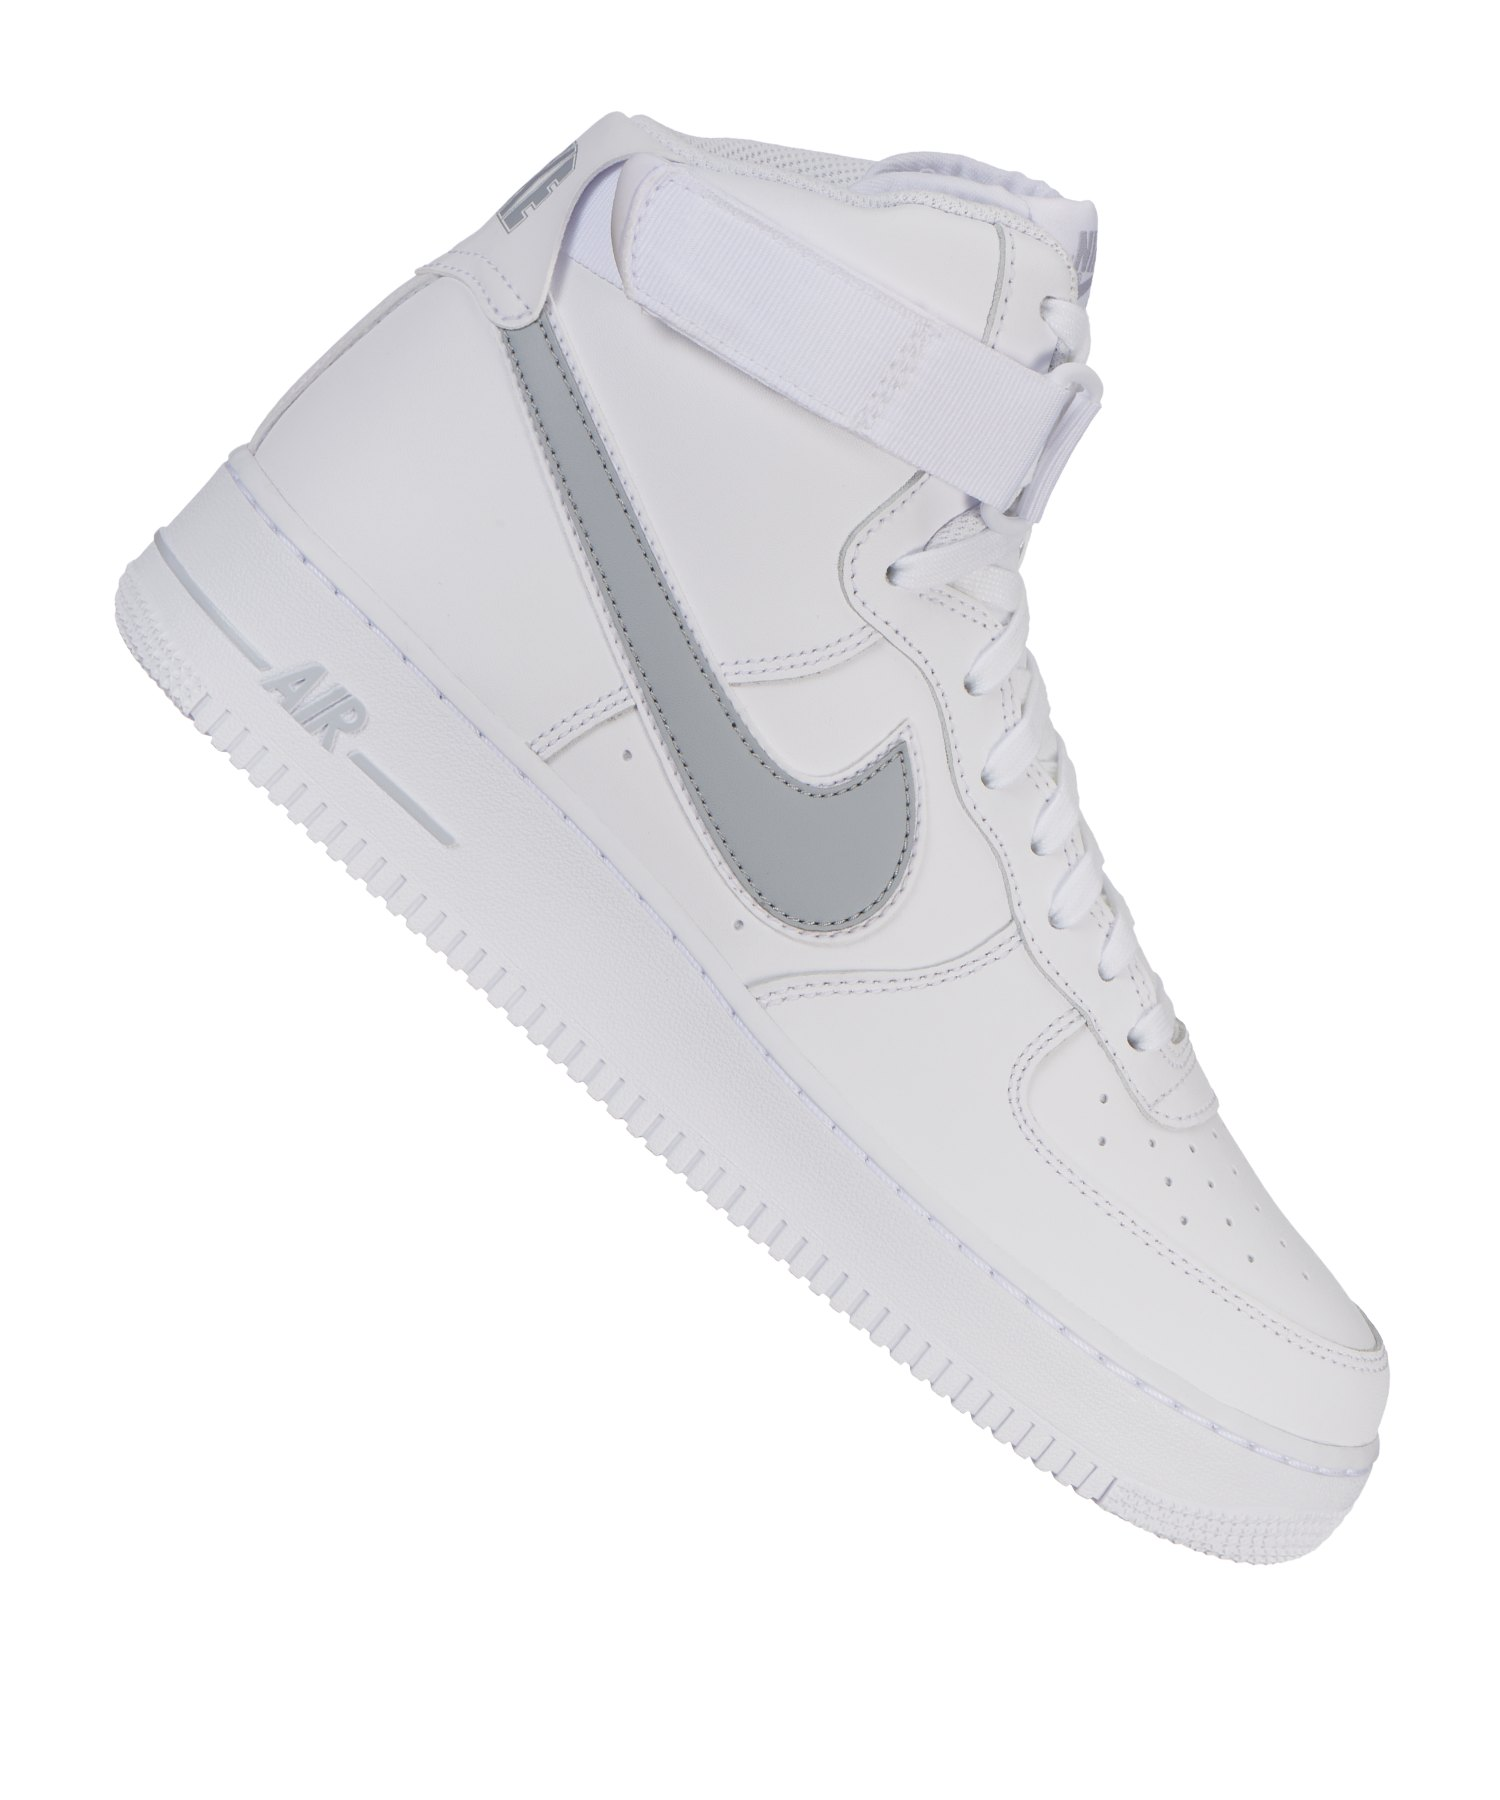 cheap for discount 8bc72 b08df Nike Air Force 1 High '07 Sneaker Weiss Grau F100